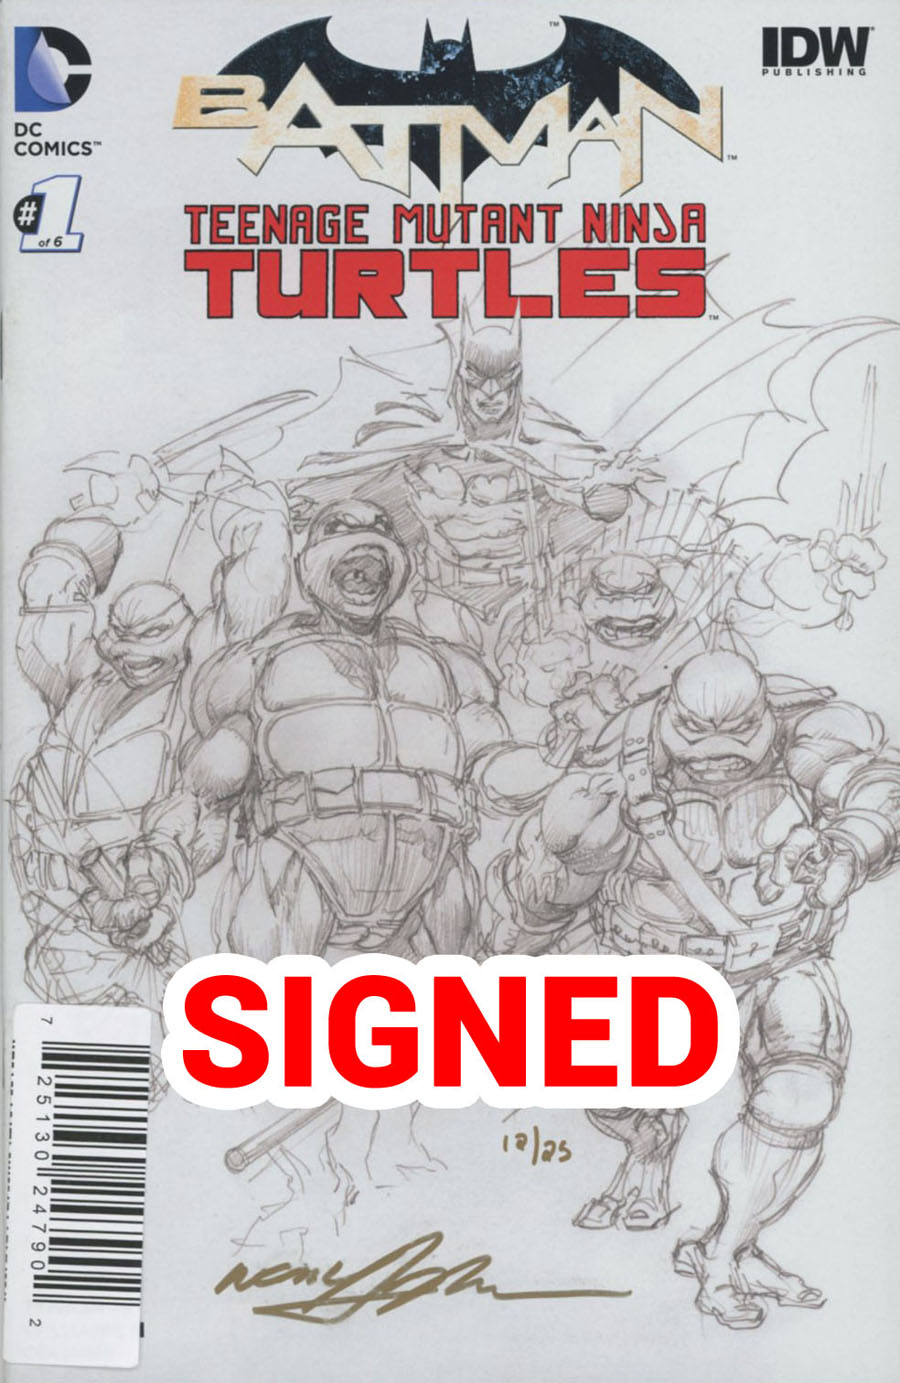 Batman Teenage Mutant Ninja Turtles #1 Cover O DF Exclusive Ultra-Limited Gold Signature Series Signed By Neal Adams